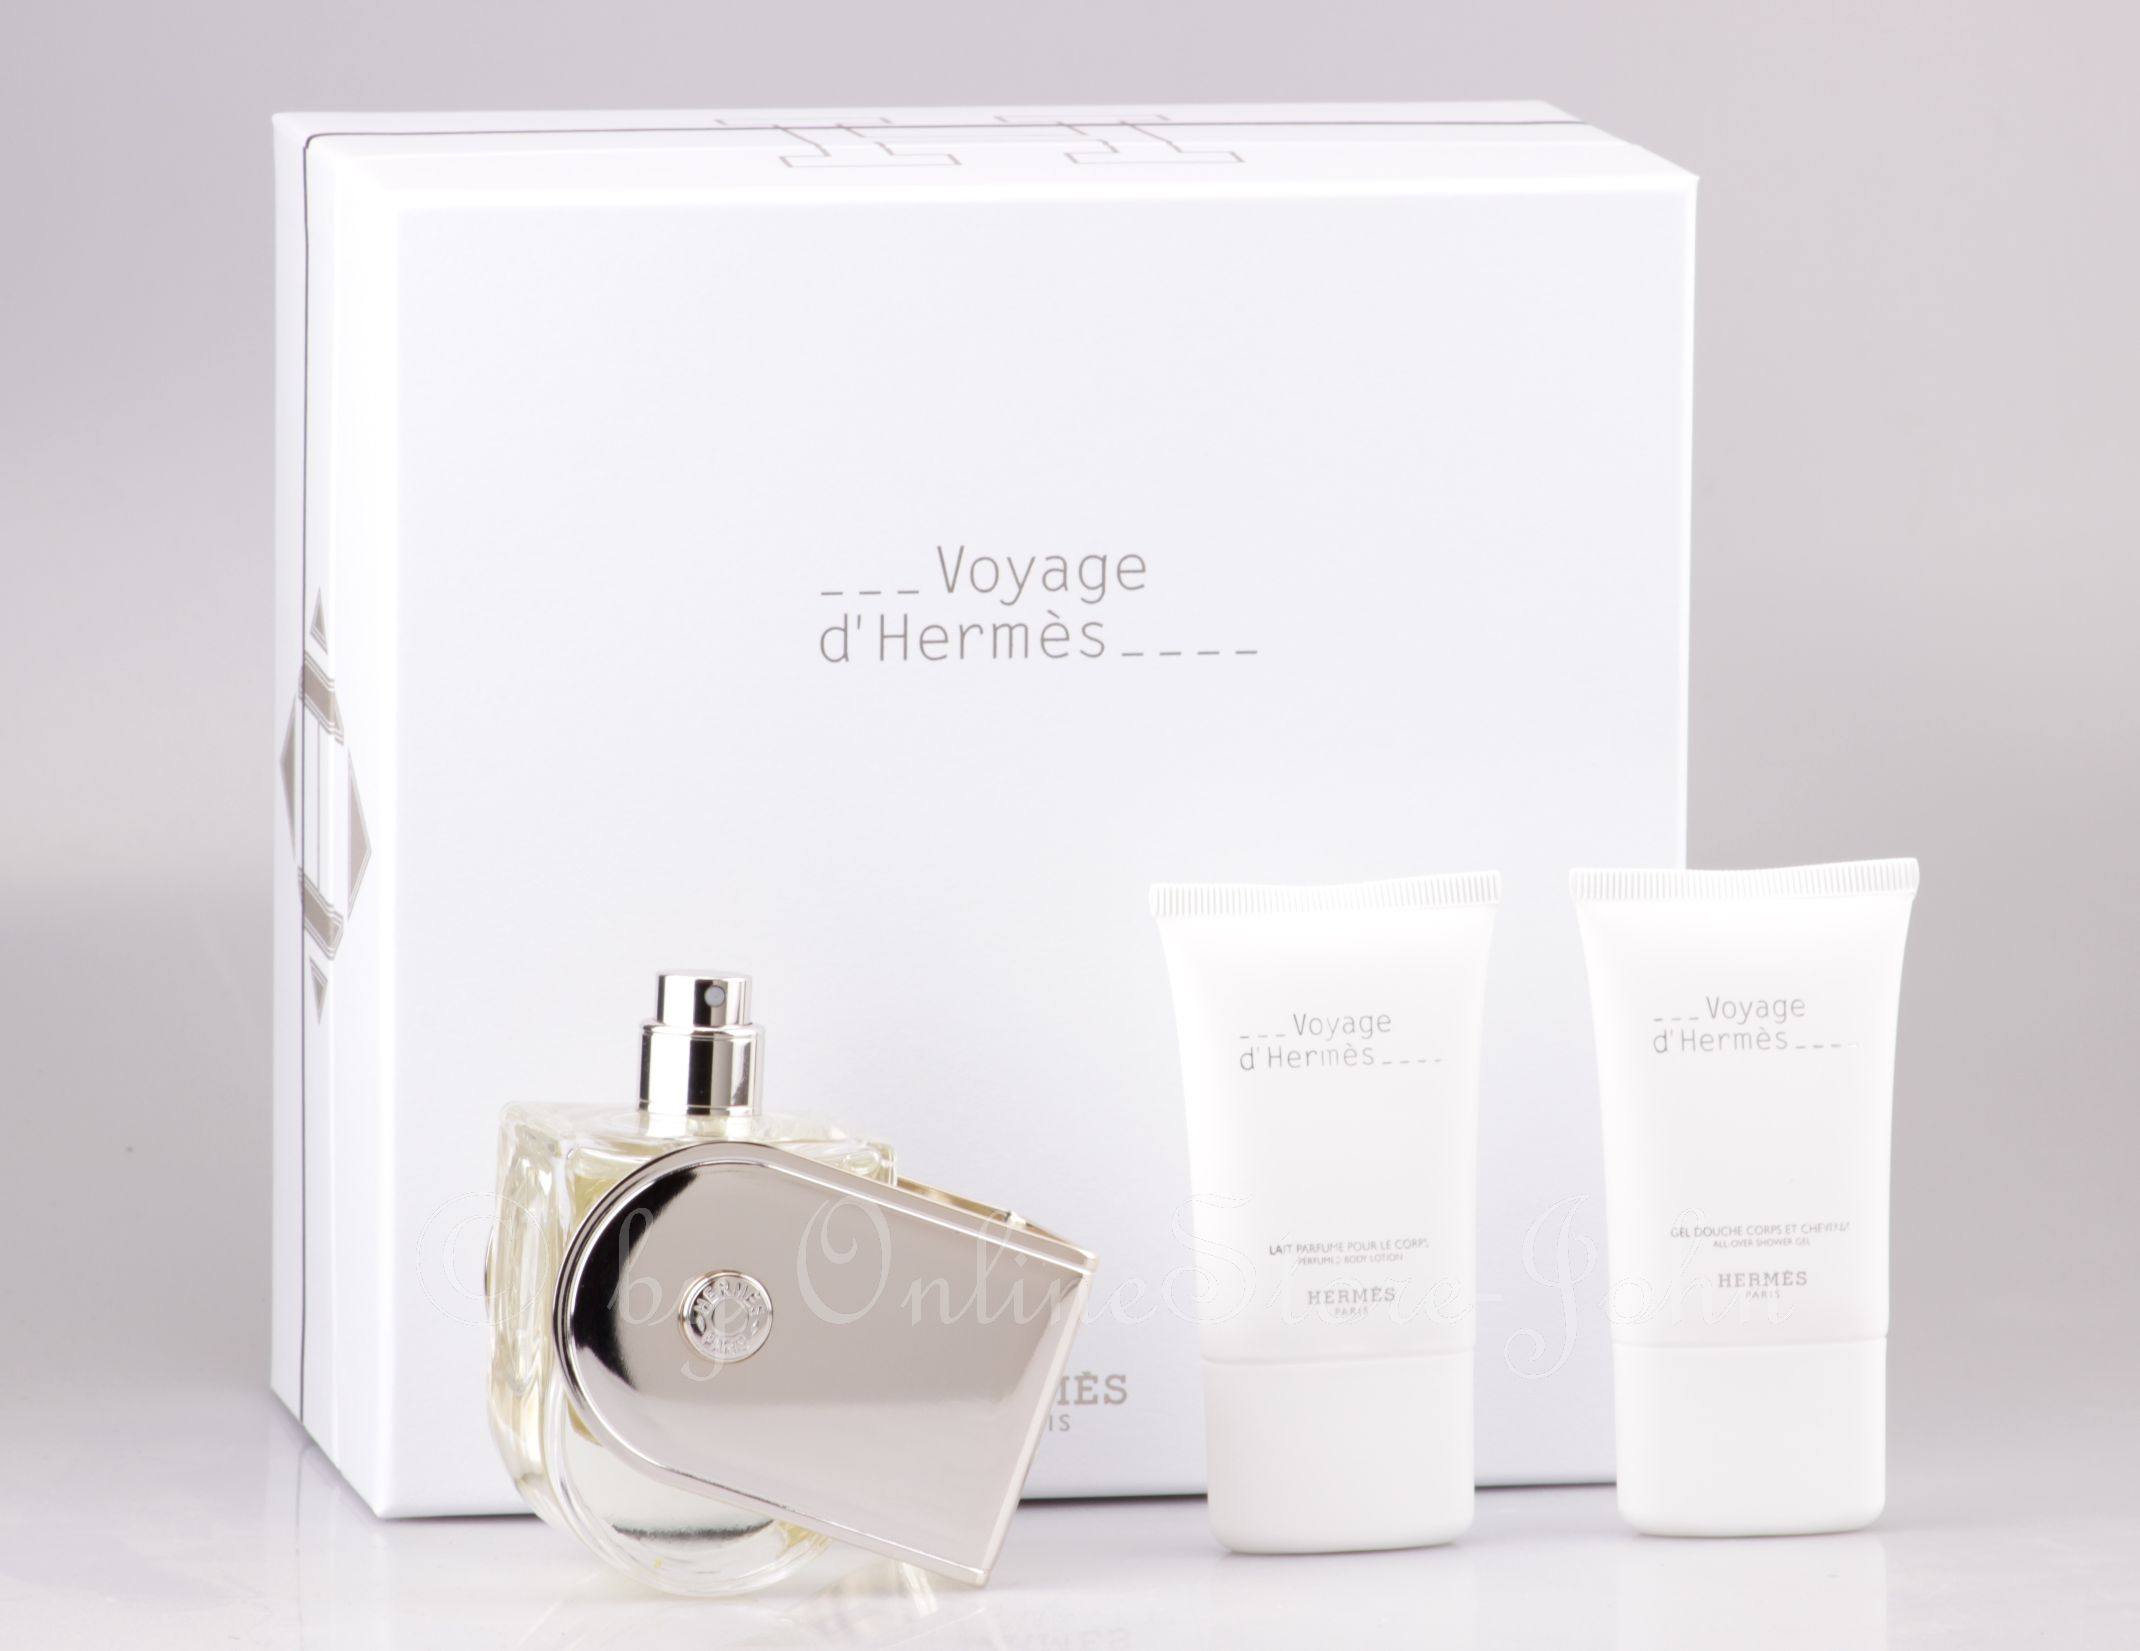 bvlgari mini collection 5 x 5ml omnia goldea edt. Black Bedroom Furniture Sets. Home Design Ideas